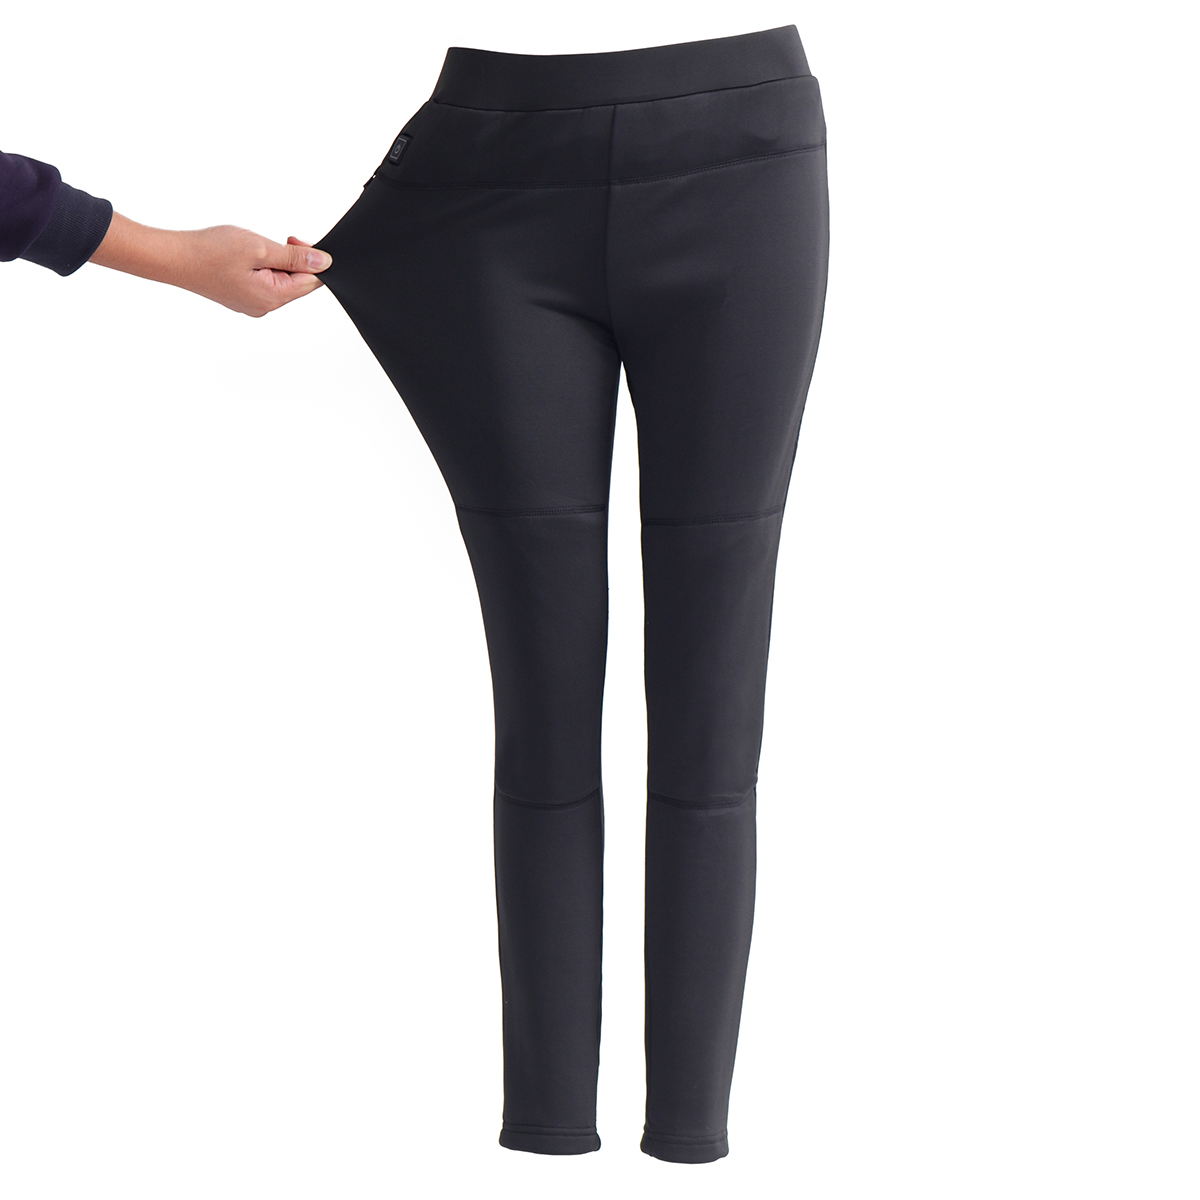 USB Intelligent Heating Trousers Carbon Fiber Heater Cotton Pants For Women